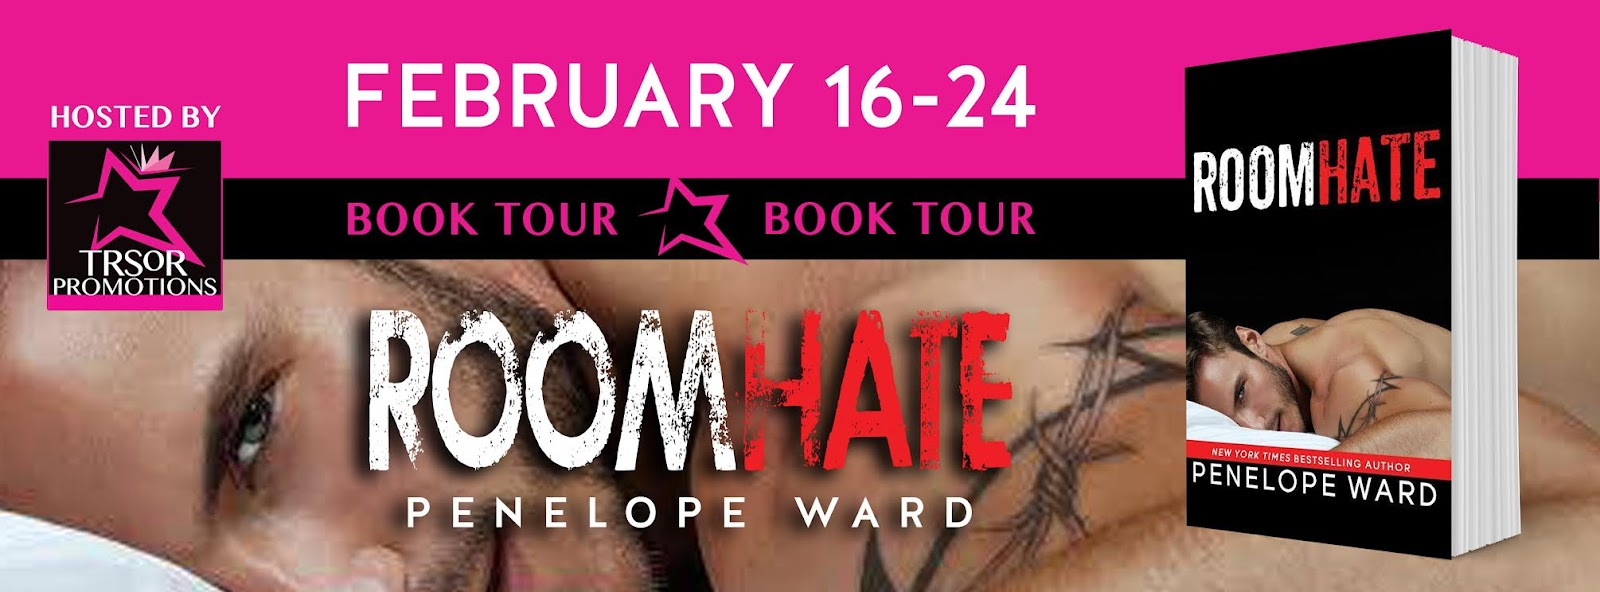 roomhate book tour.jpg